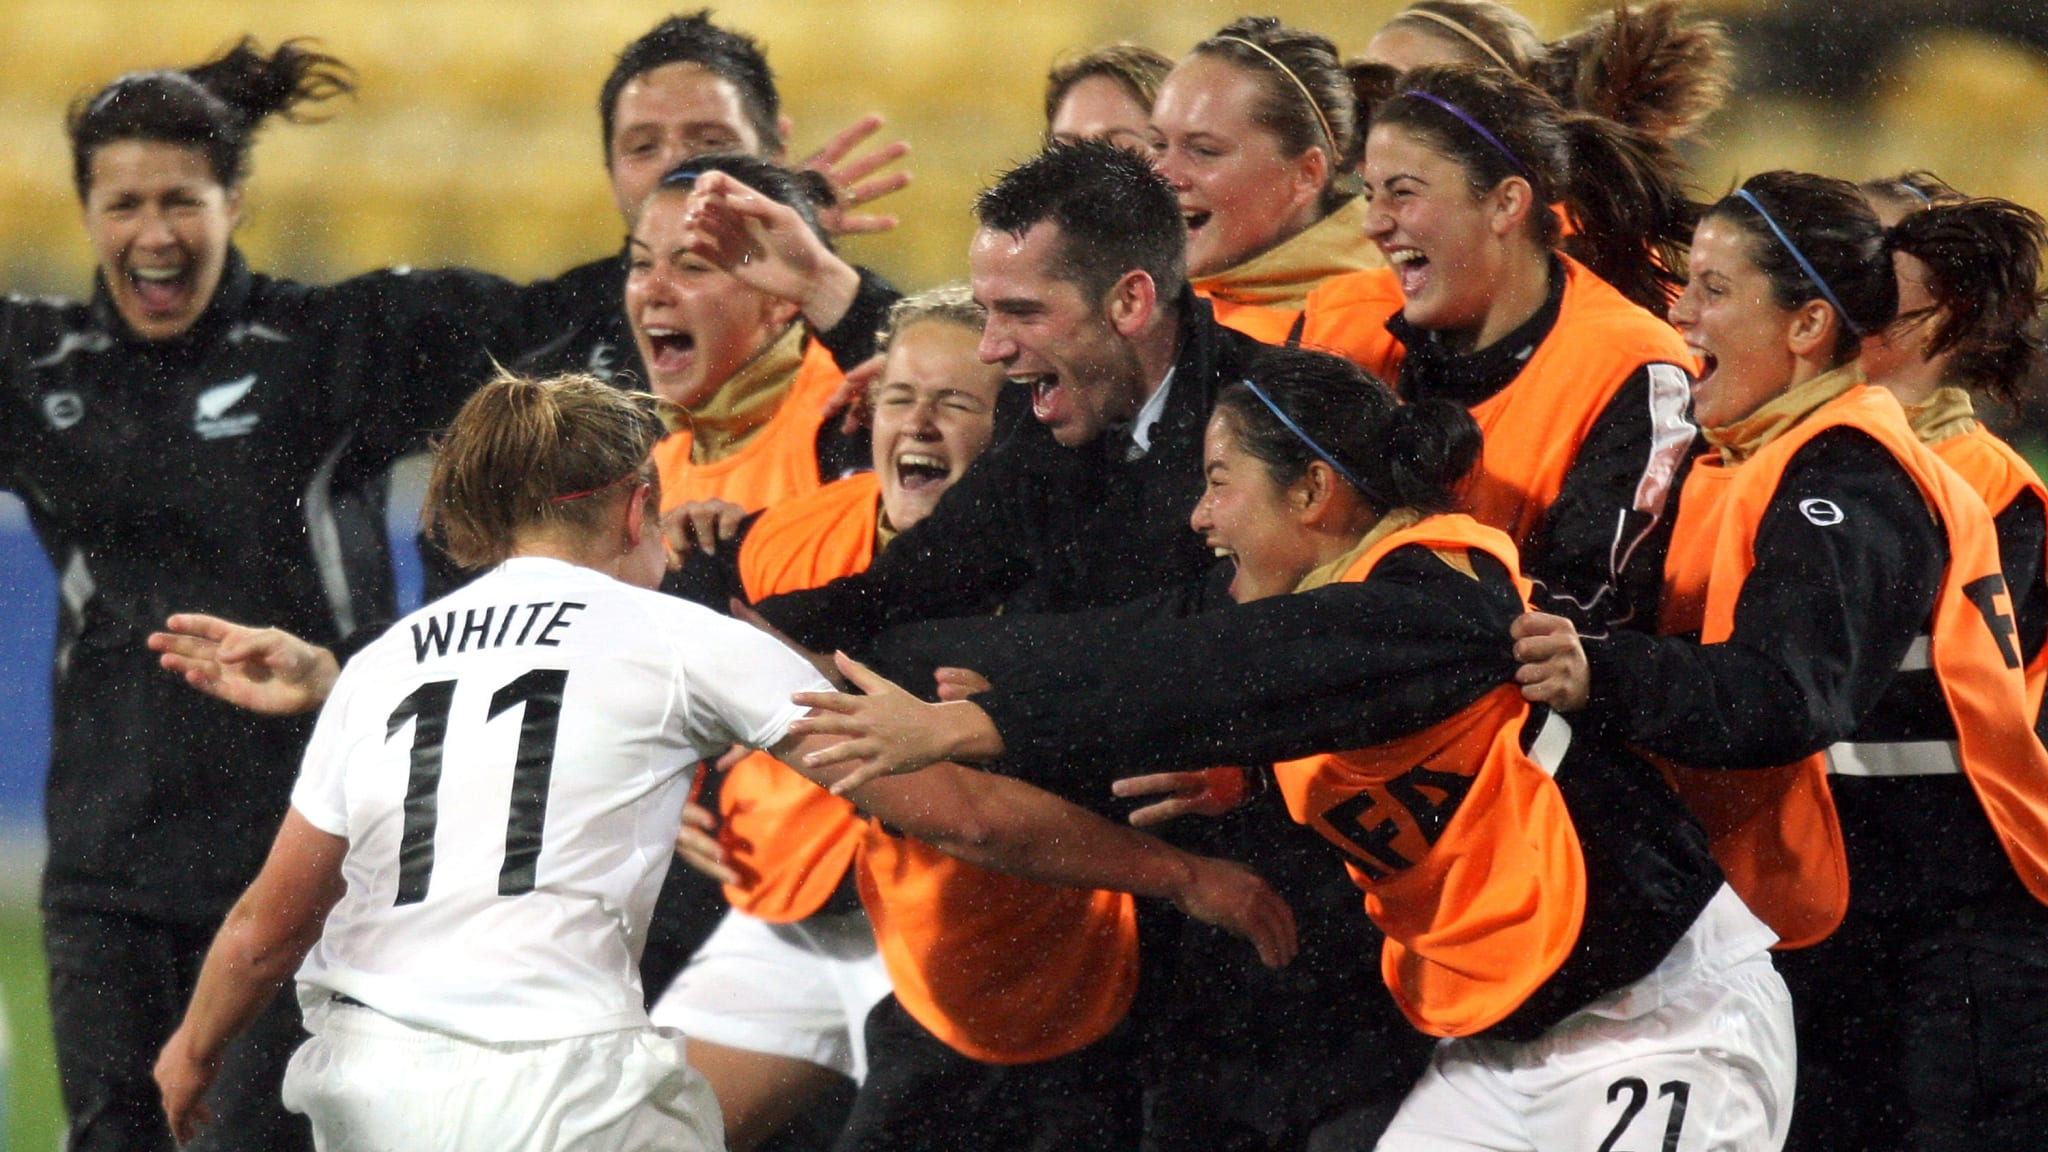 Rosie White of New Zealand celebrates her goal during the FIFA U-17 Women's World Cup match between New Zealand and Colombia at the Westpac Stadium on November 4, 2008 in Wellington, New Zealand.